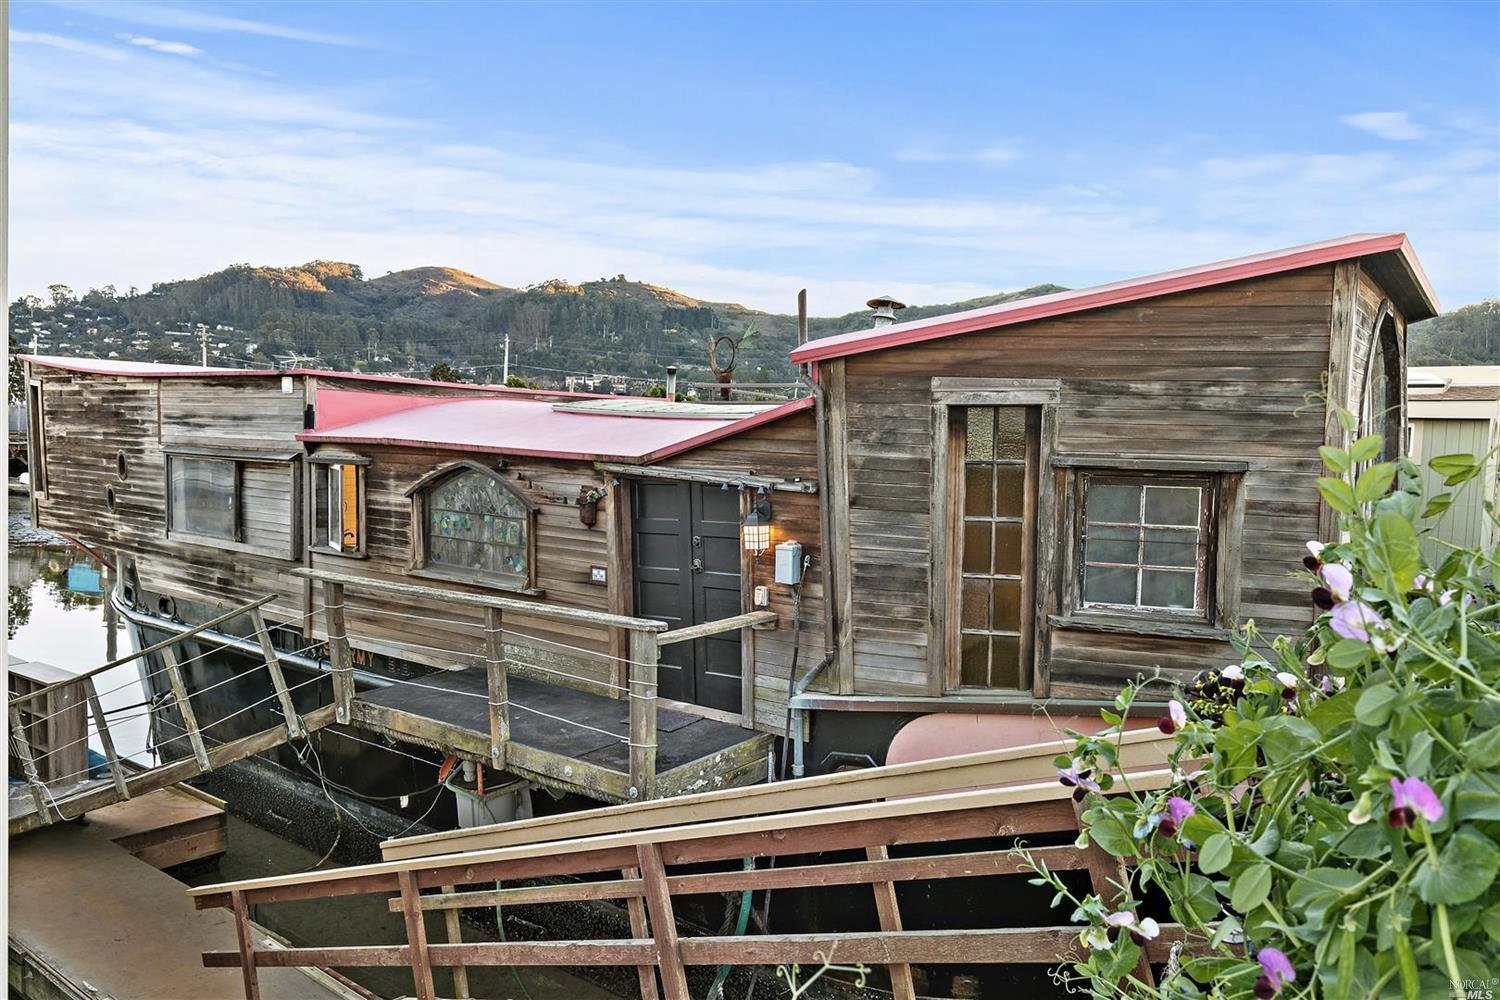 Author Shel Silverstein's former barge home is for sale in Sausalito